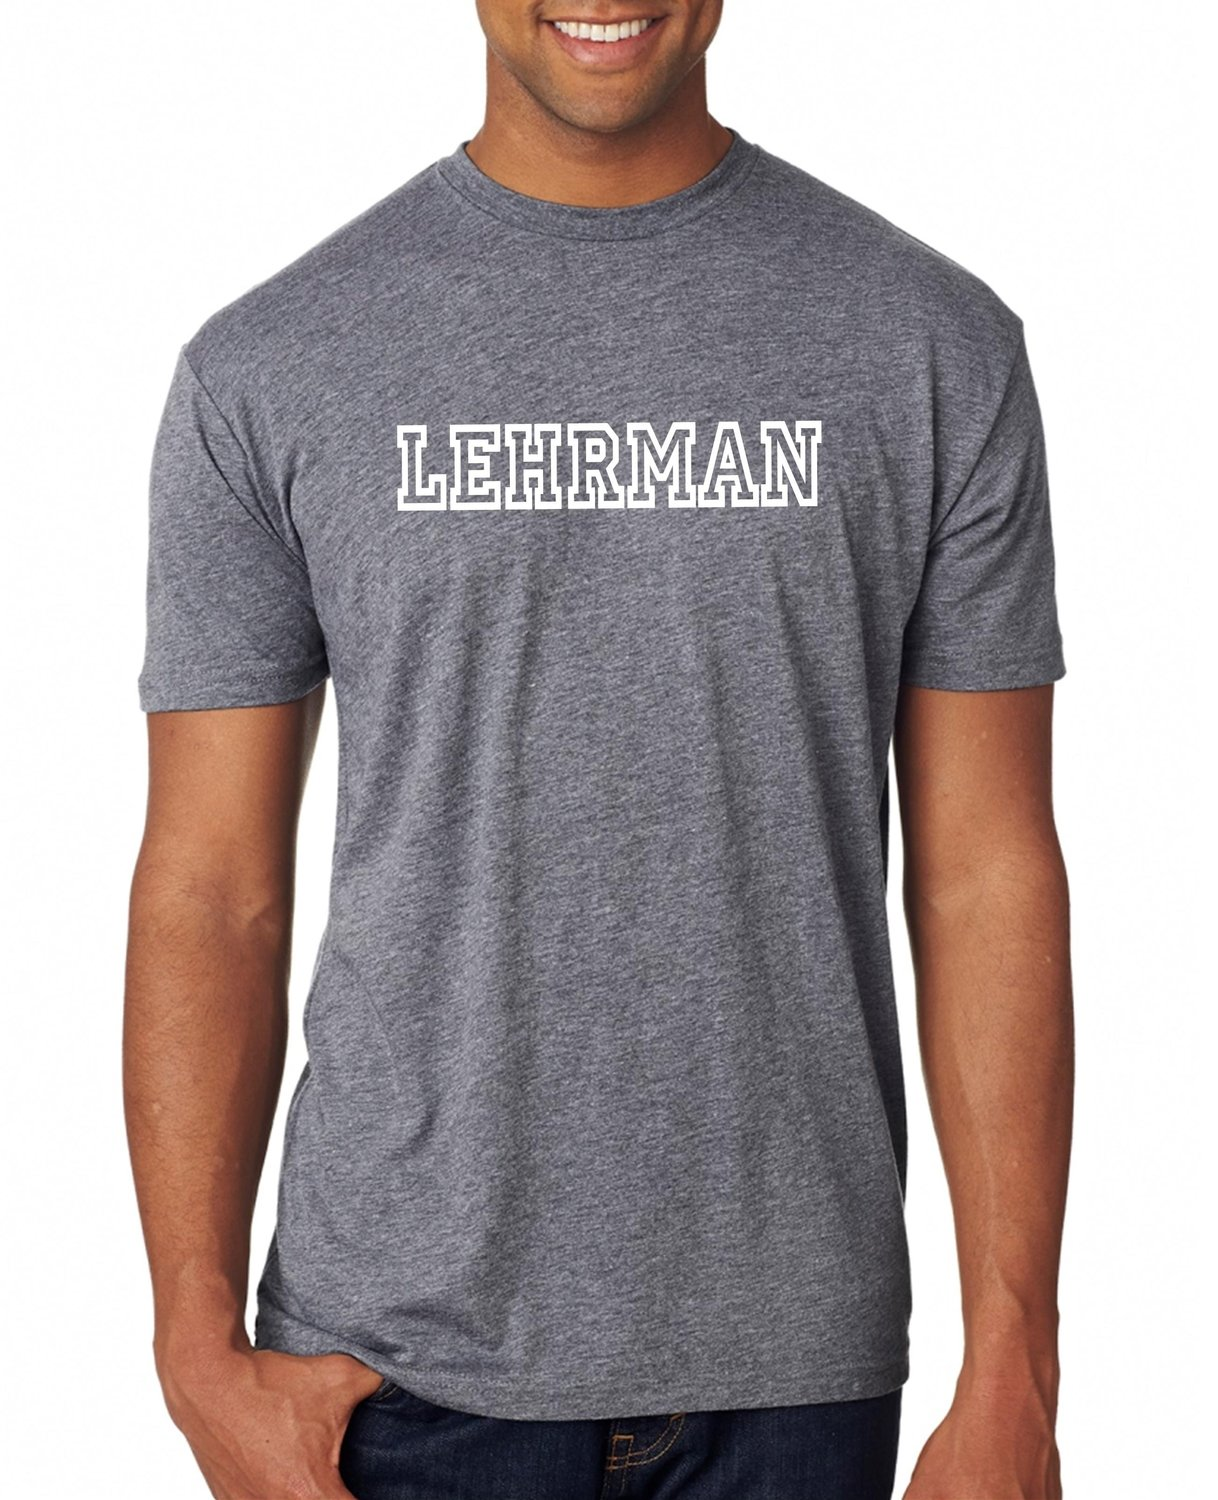 NEW! Grey Soft T-shirt with White ADULT